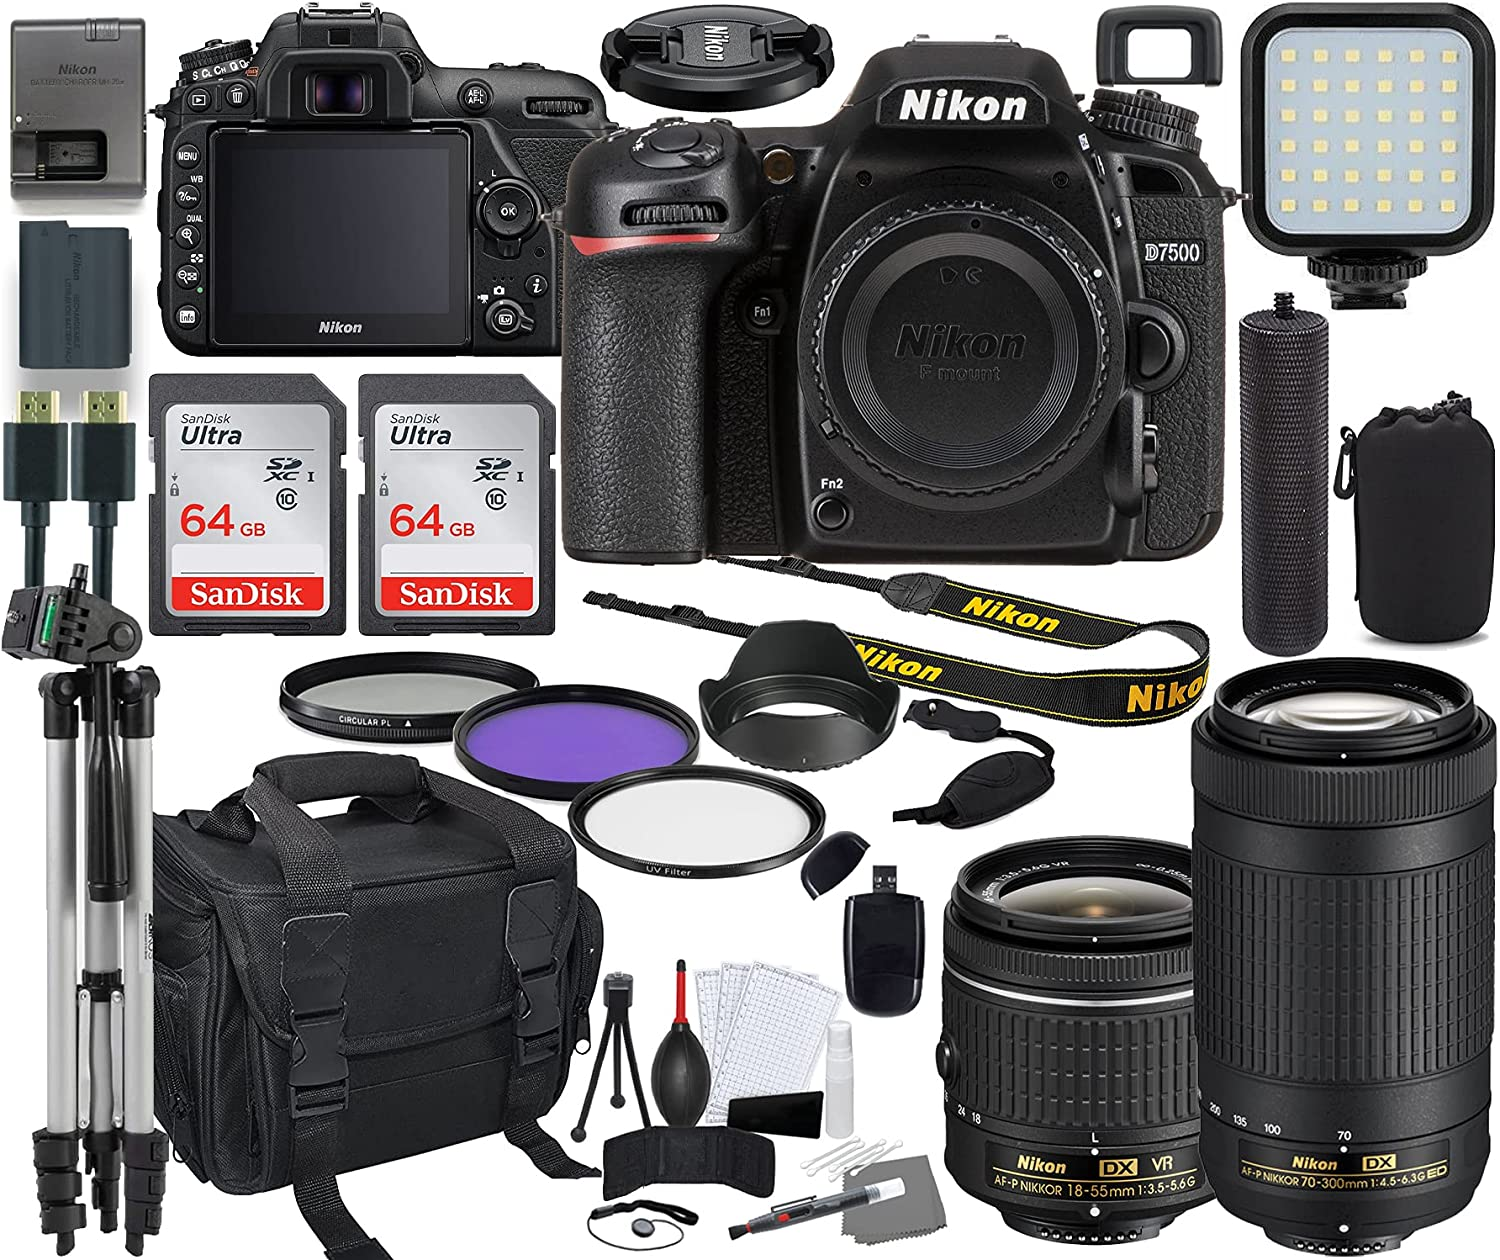 Ranking Special price TOP20 Nikon D7500 DSLR Camera with 18-55mm Lens Bundle VR + 70-300mm